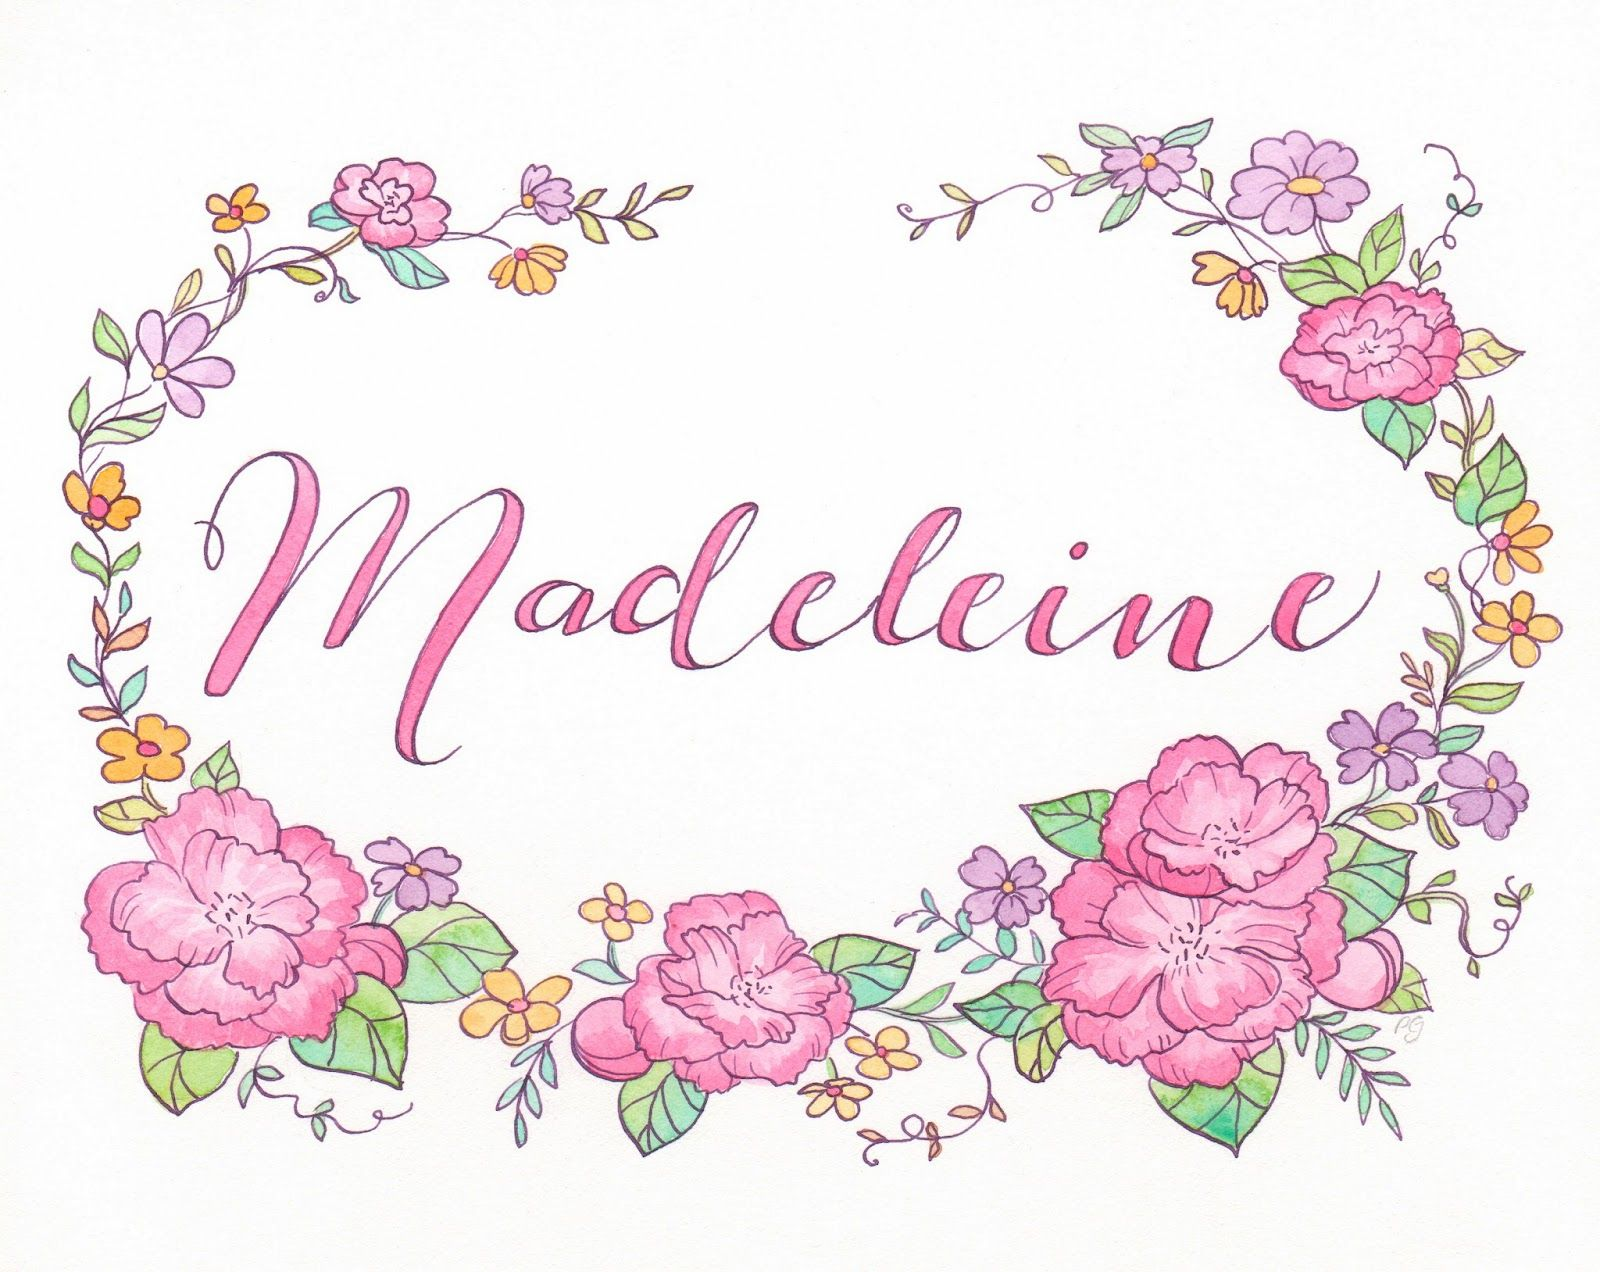 Meaning of name blanche - Madeleine Name Google Search